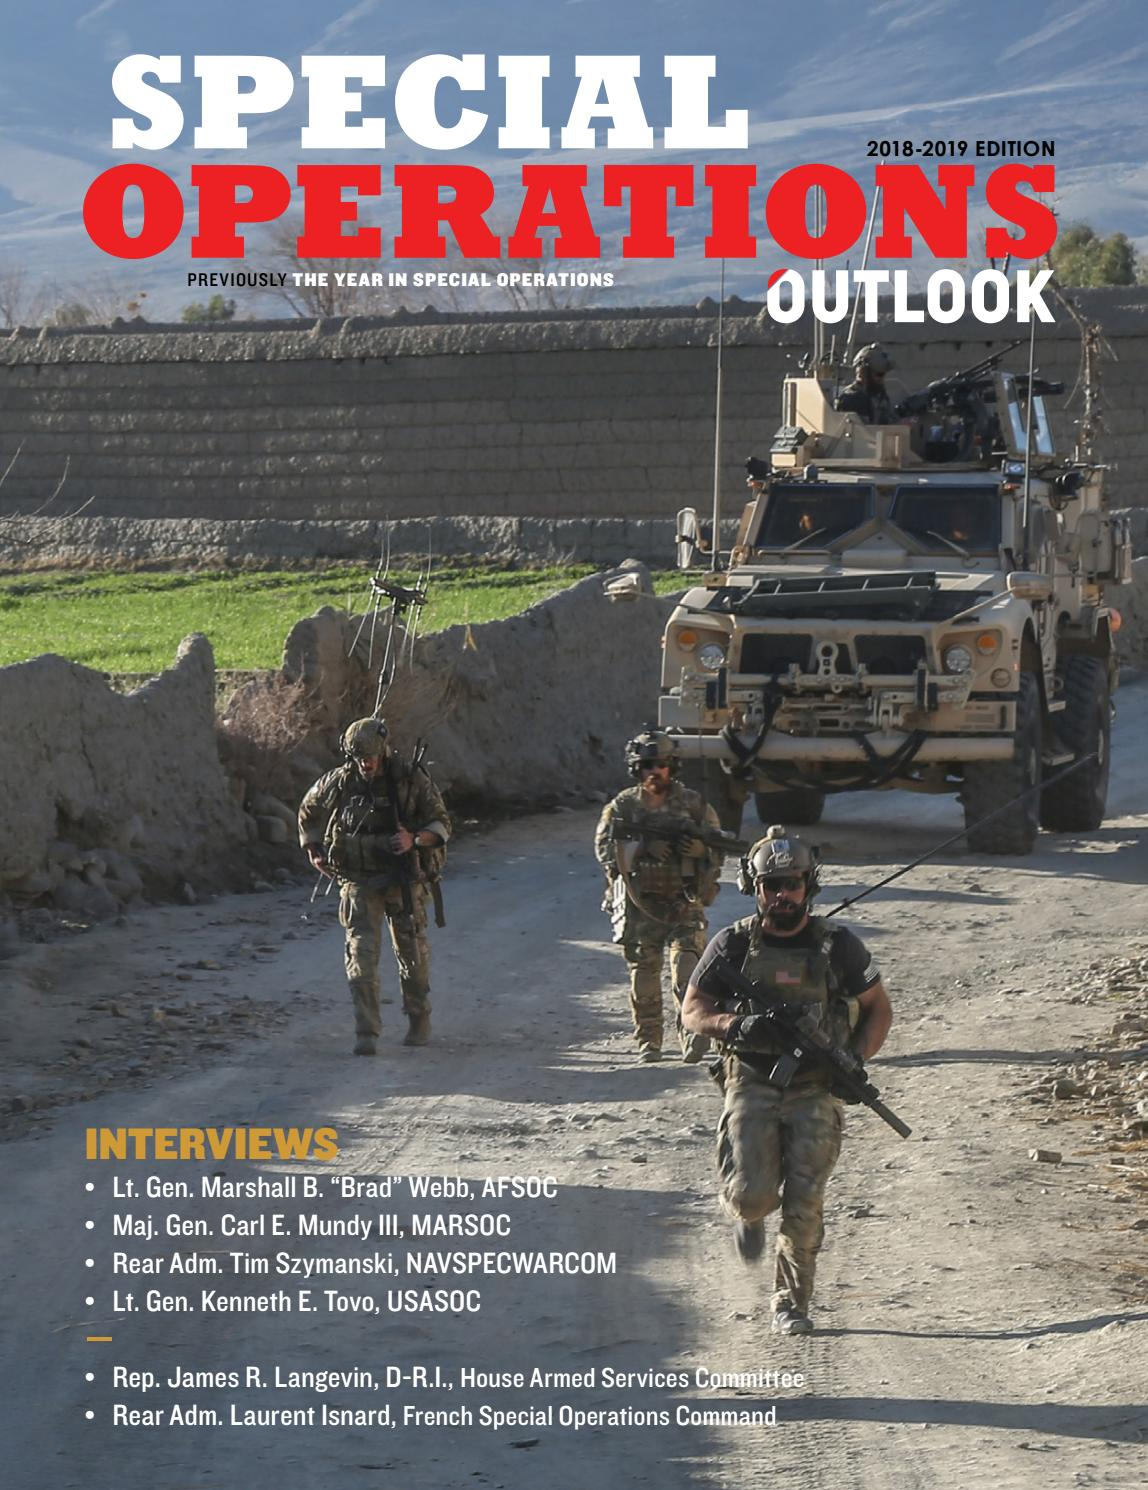 Special Operations Outlook 2018-2019 Edition by Faircount